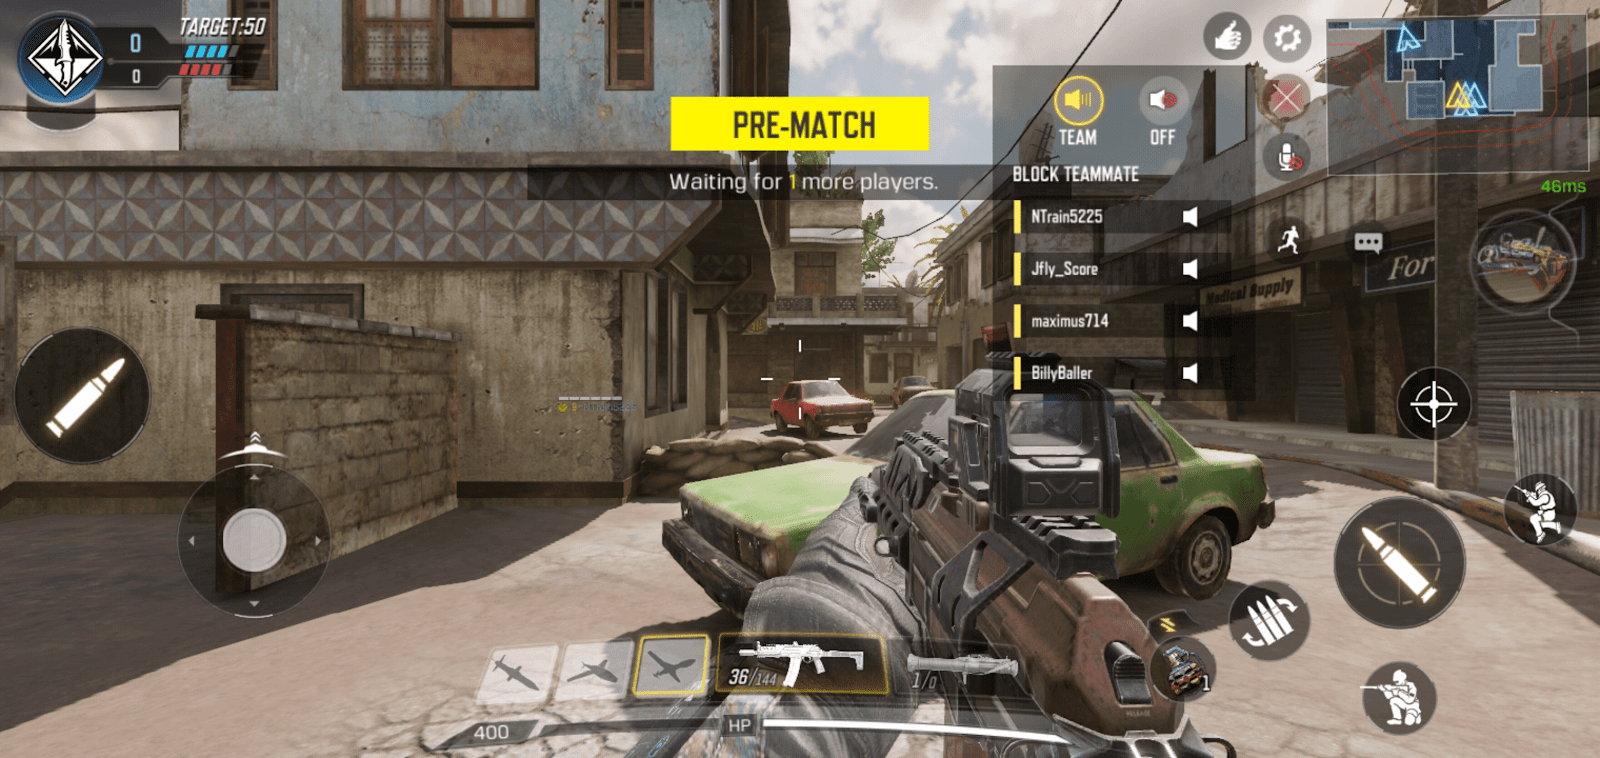 Screenshot of In-game voice chat in Call of Duty